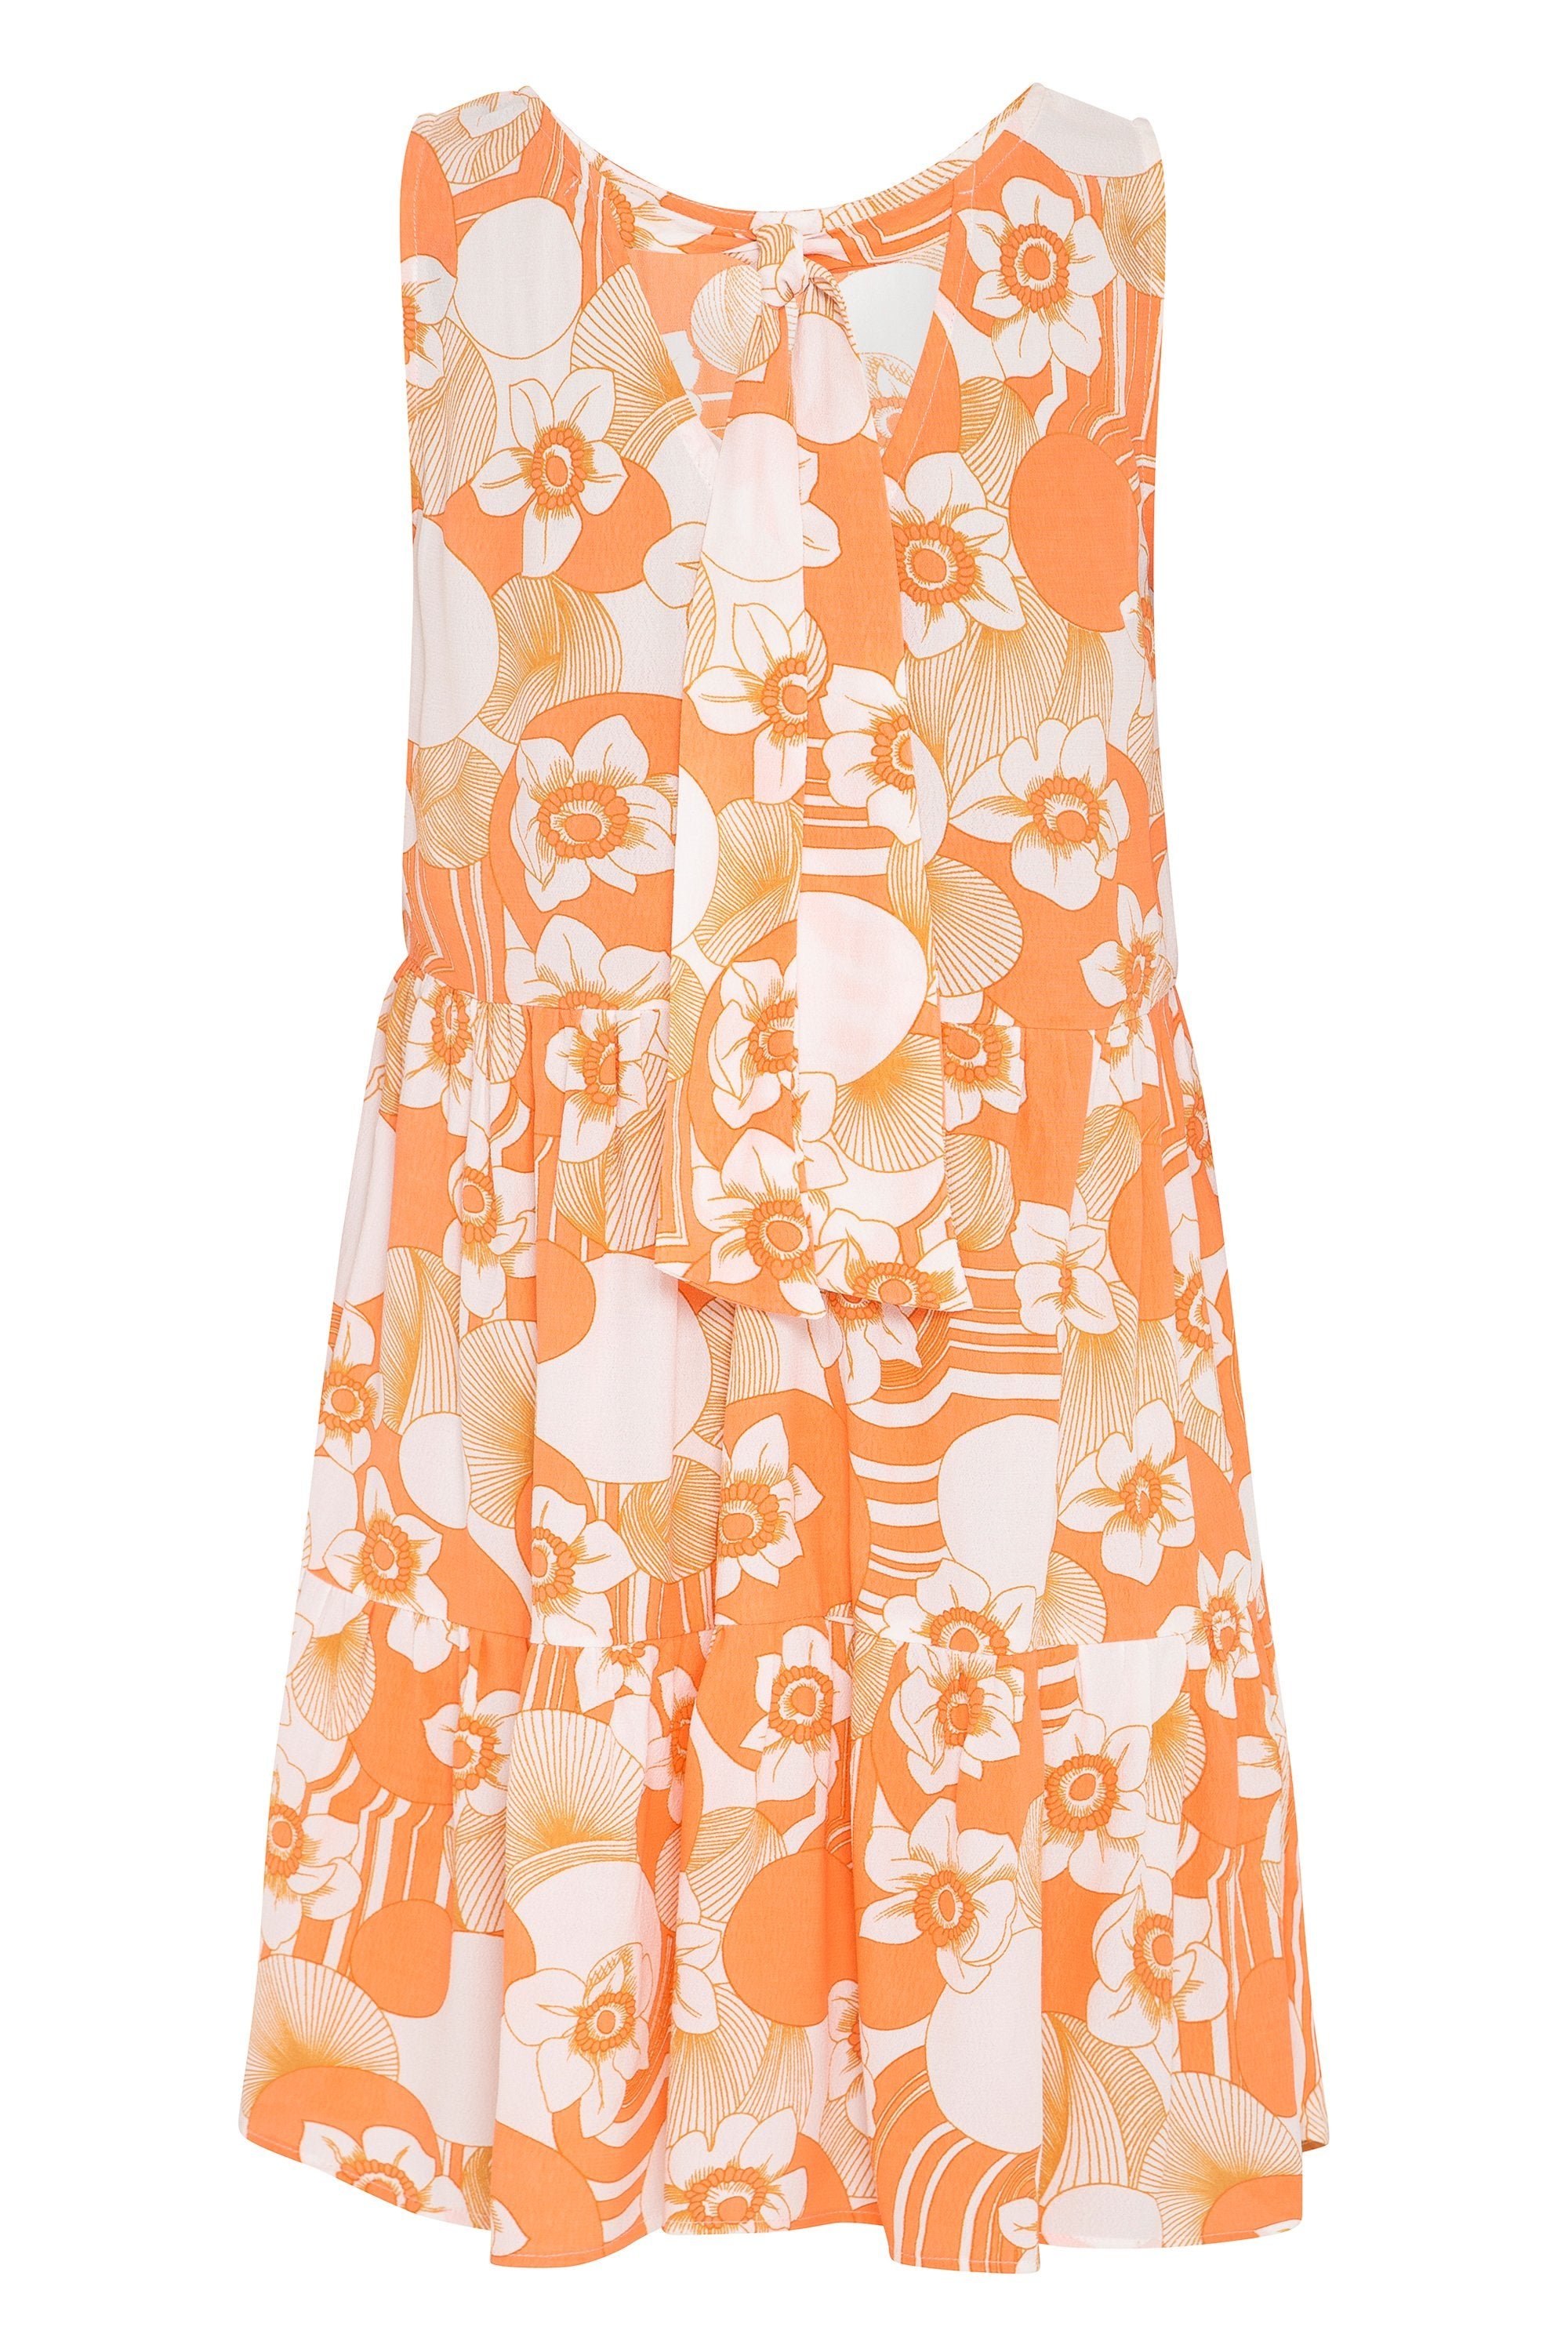 Olivia Dress In Tangerine